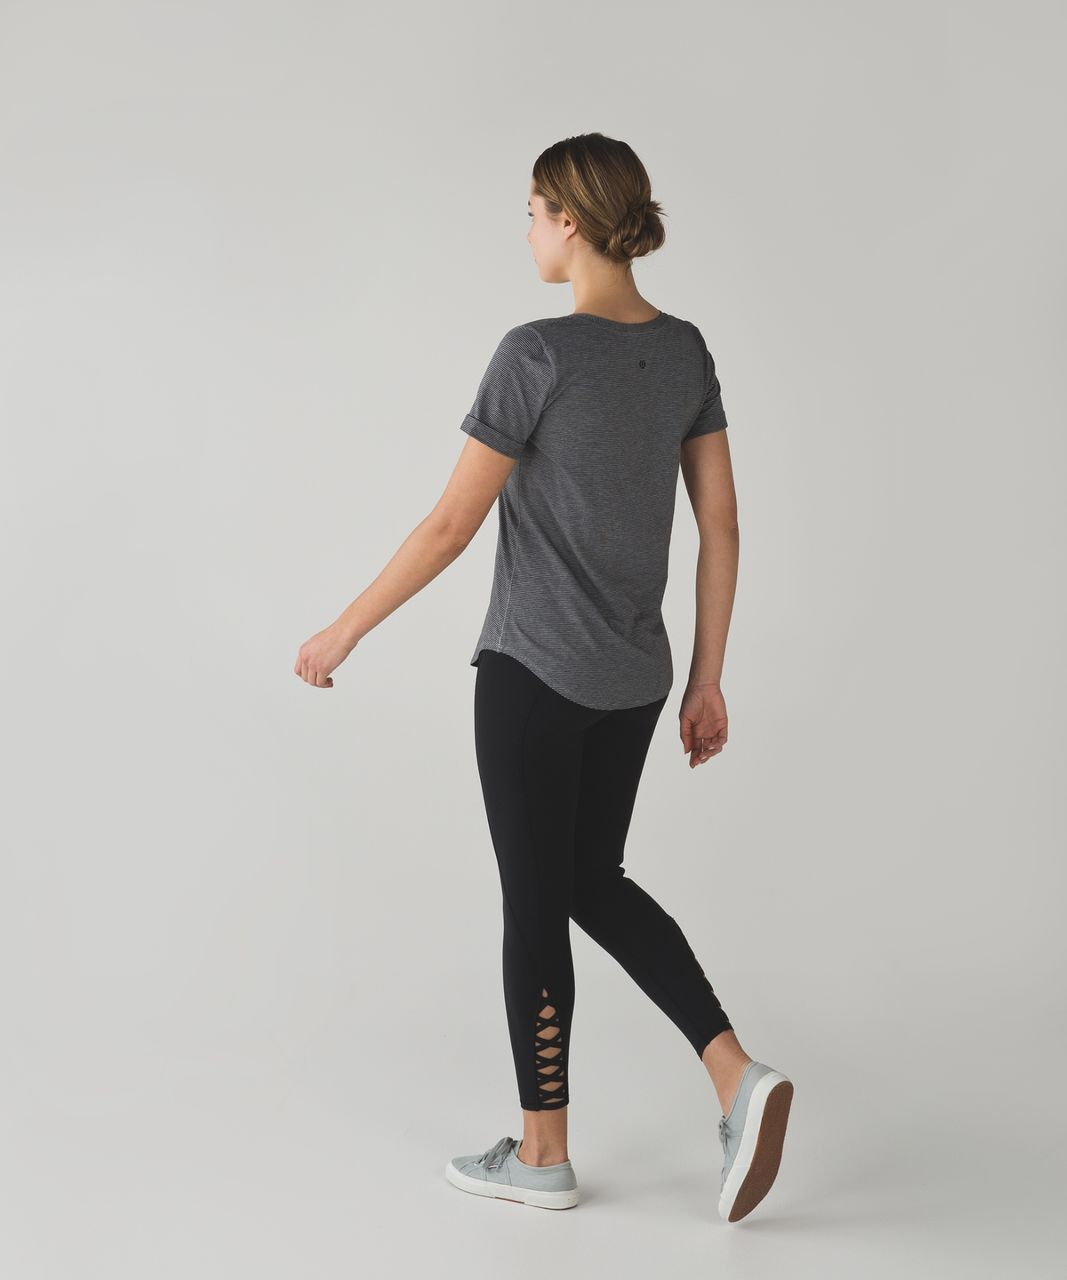 Lululemon Love Tee II - Tonka Stripe Black Heathered Medium Grey